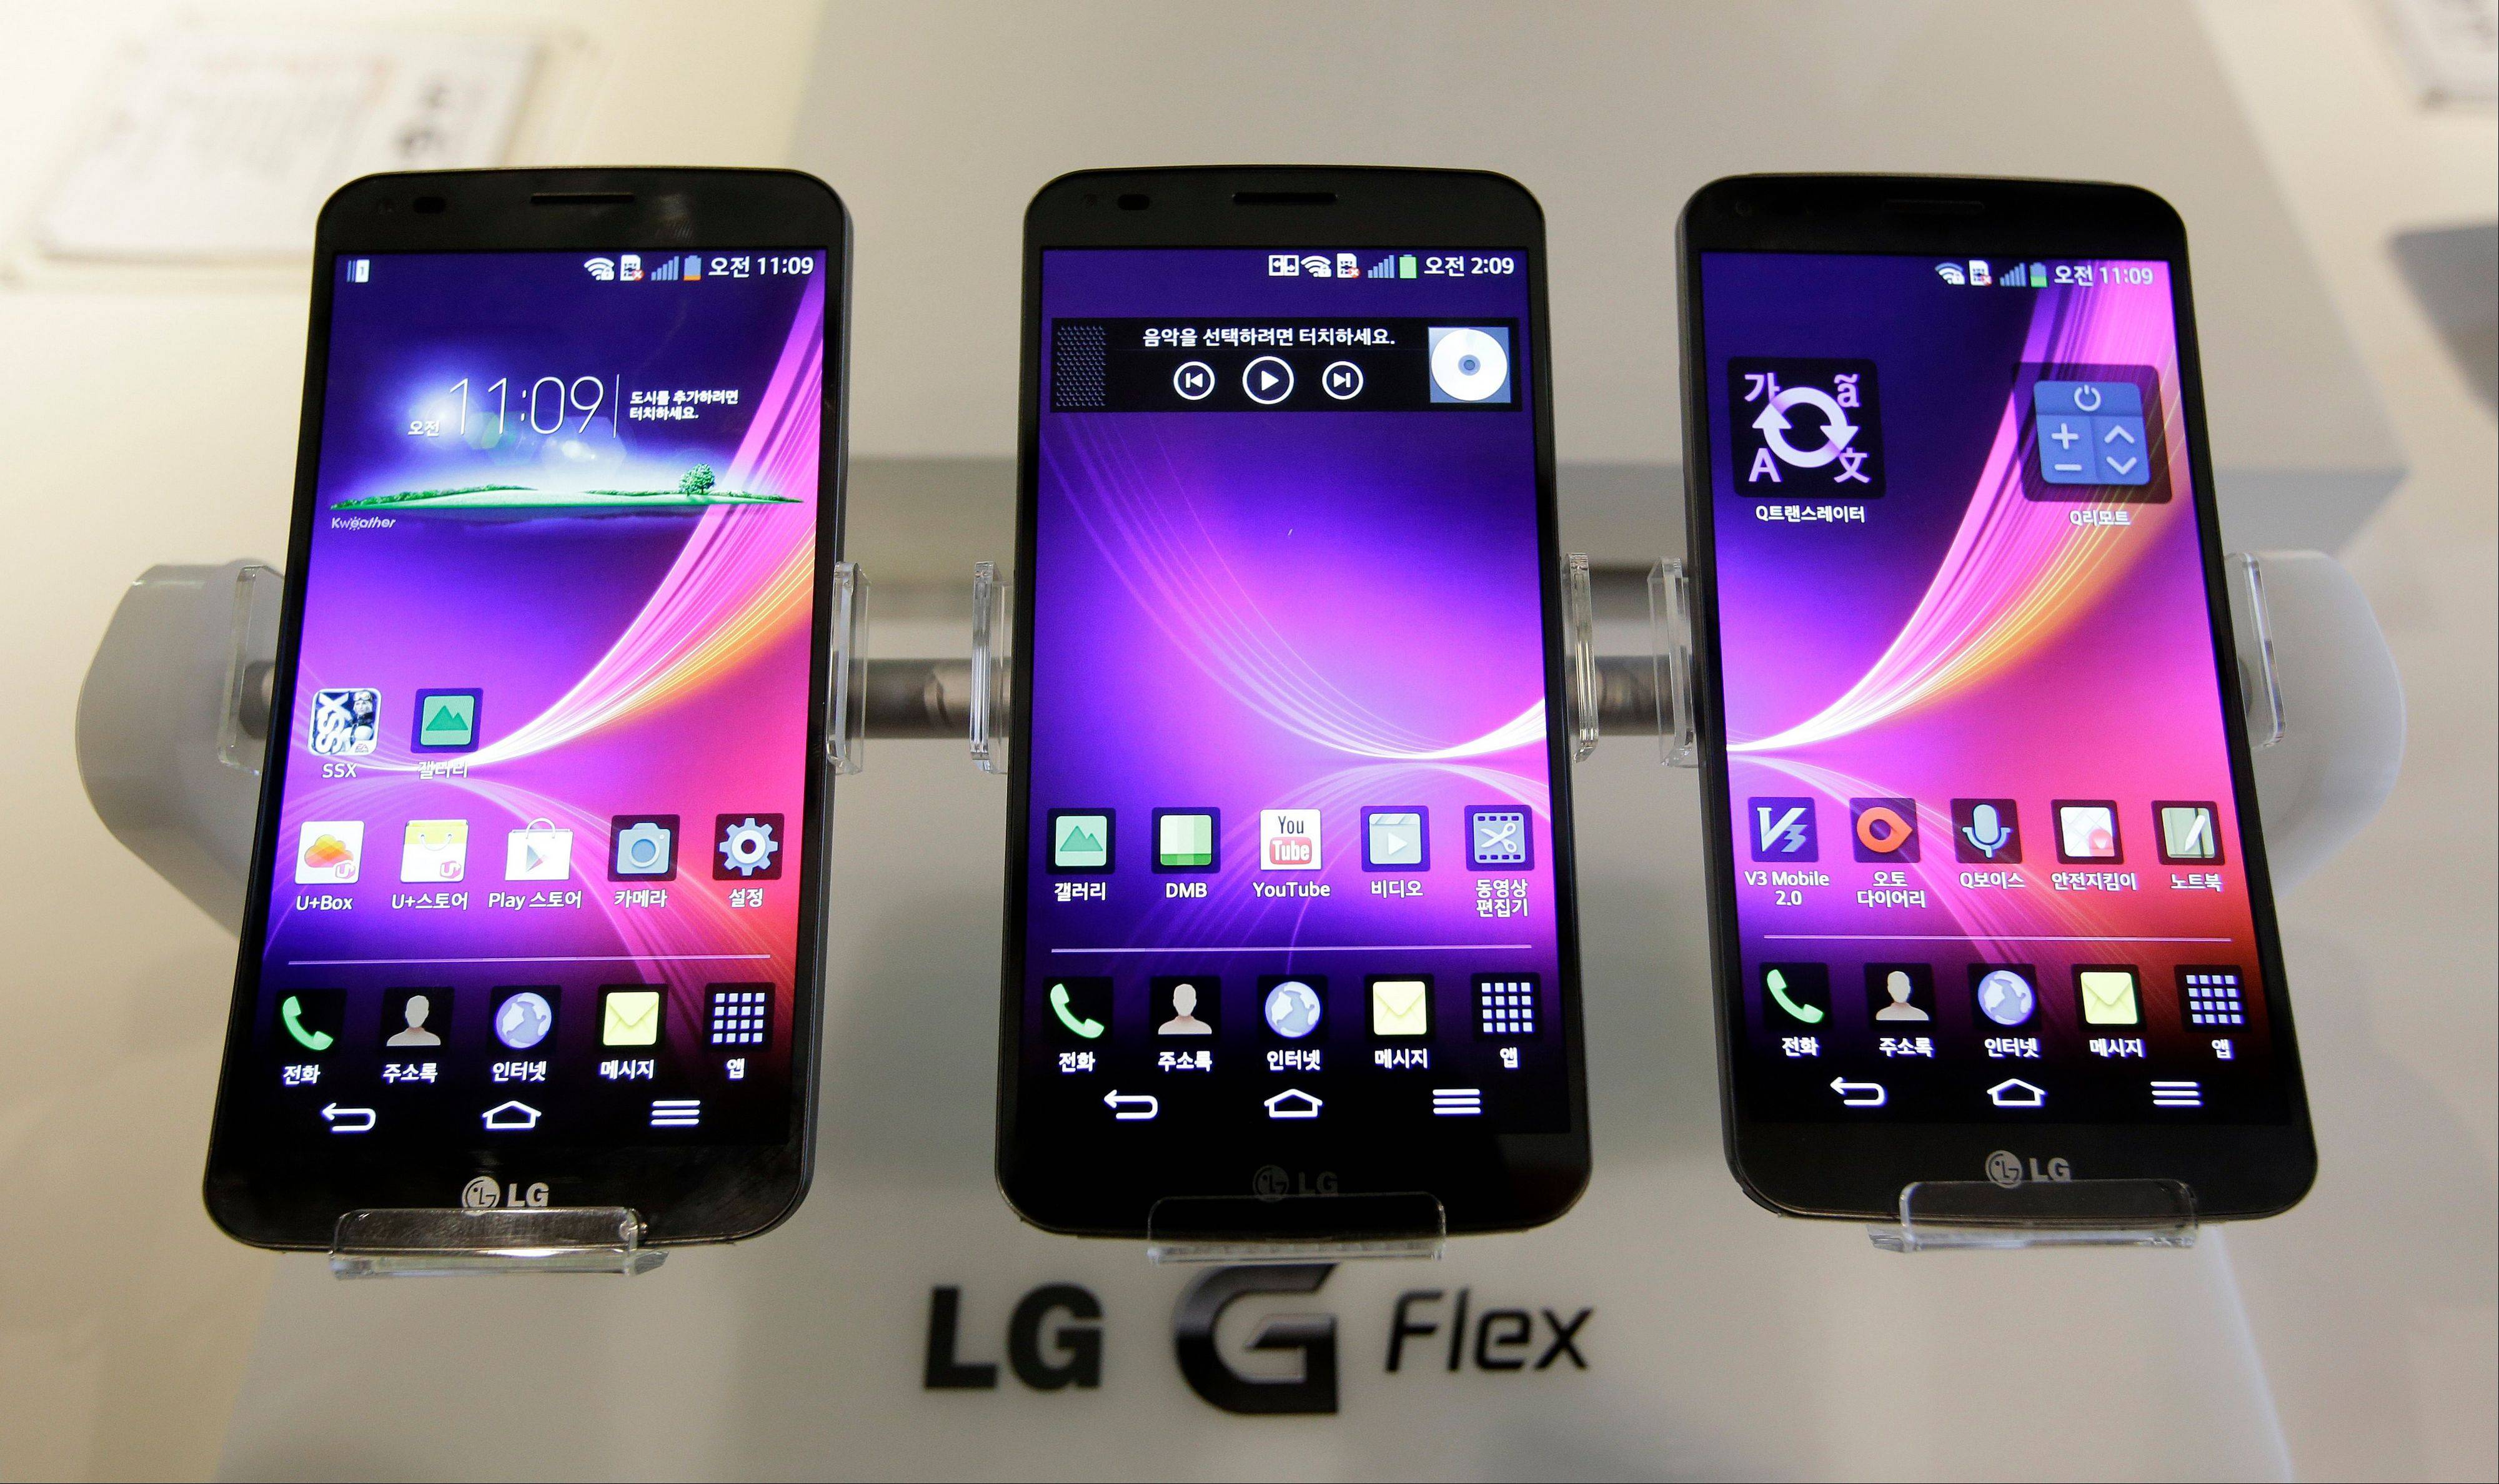 LG Electronics's smartphone G Flex is displayed during a media event at its head office in Seoul, South Korea.